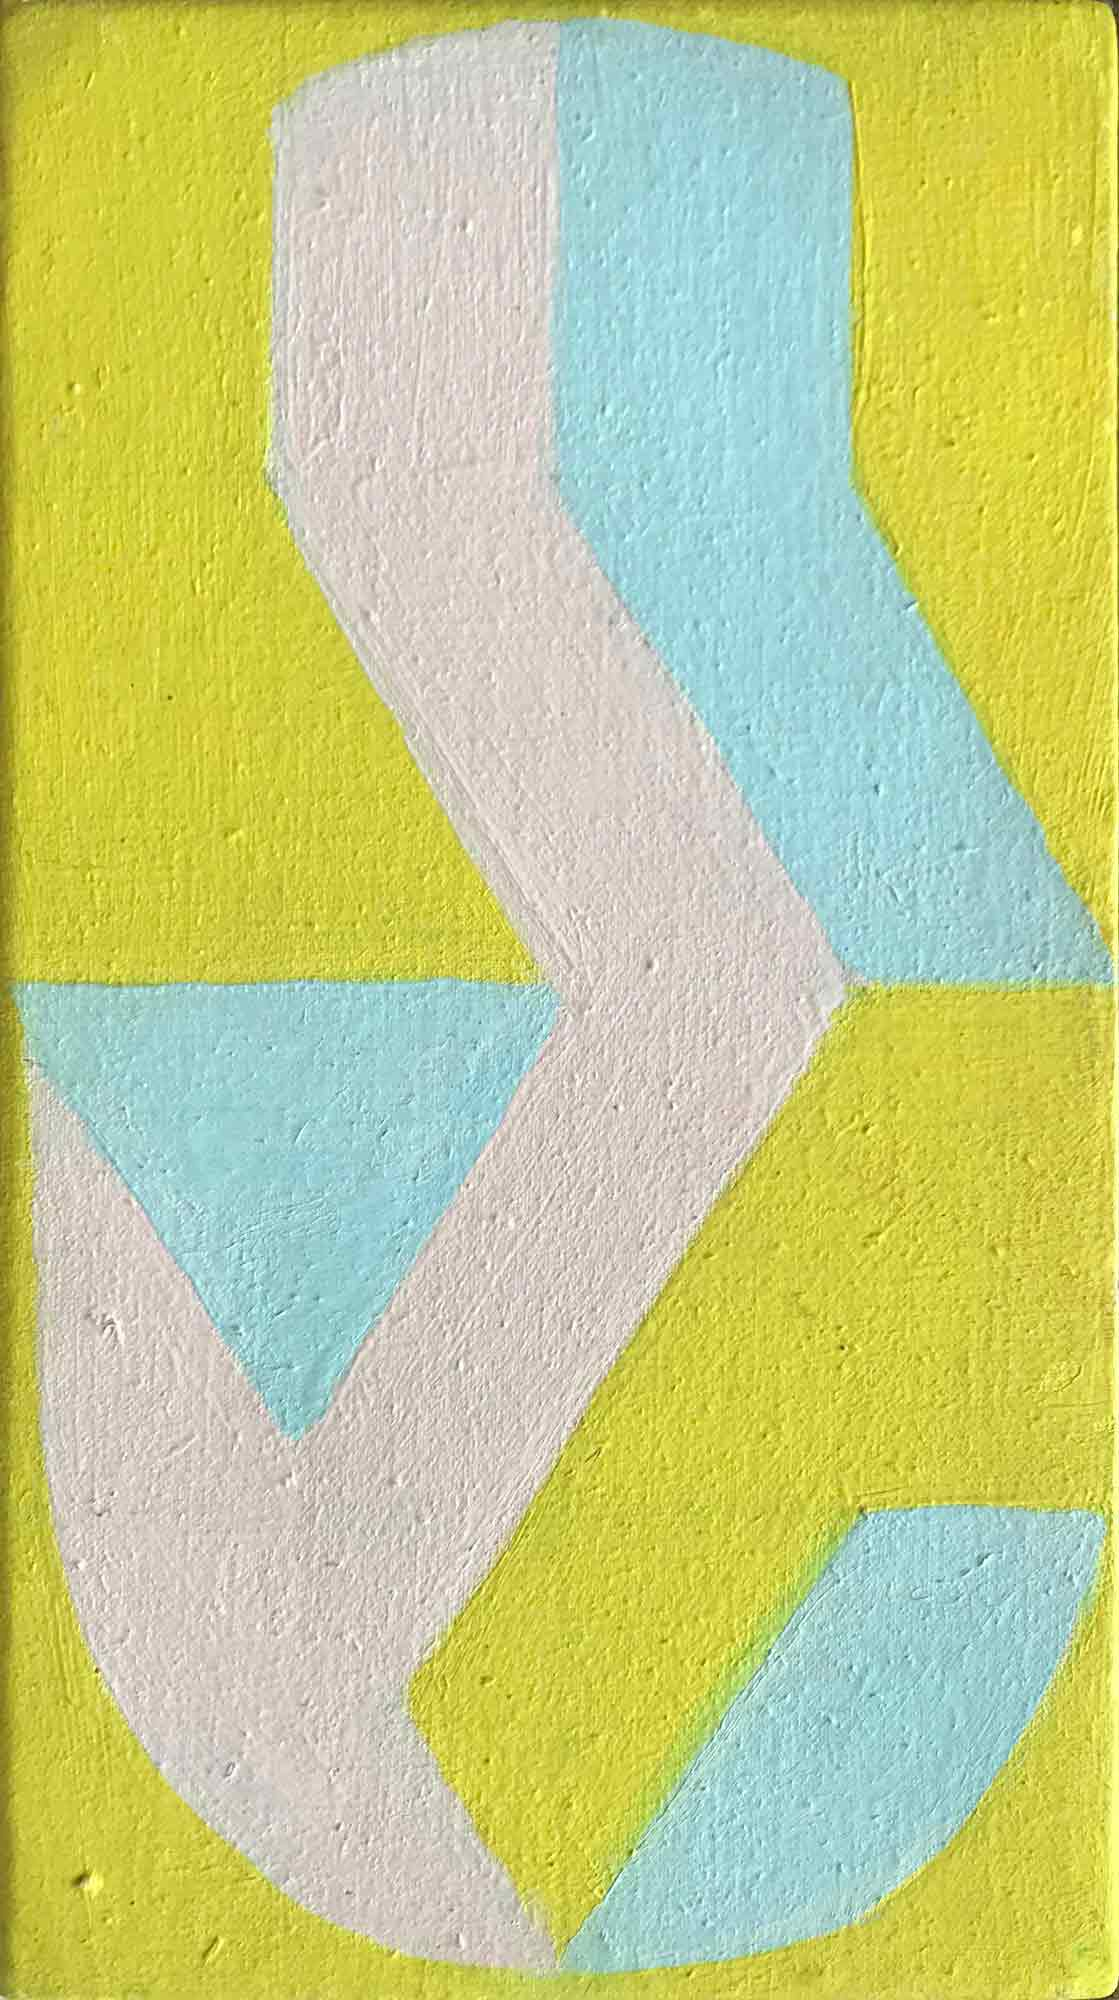 Margaret Mellis 'Fragmented Oval - Yellow, Blue, Pink'